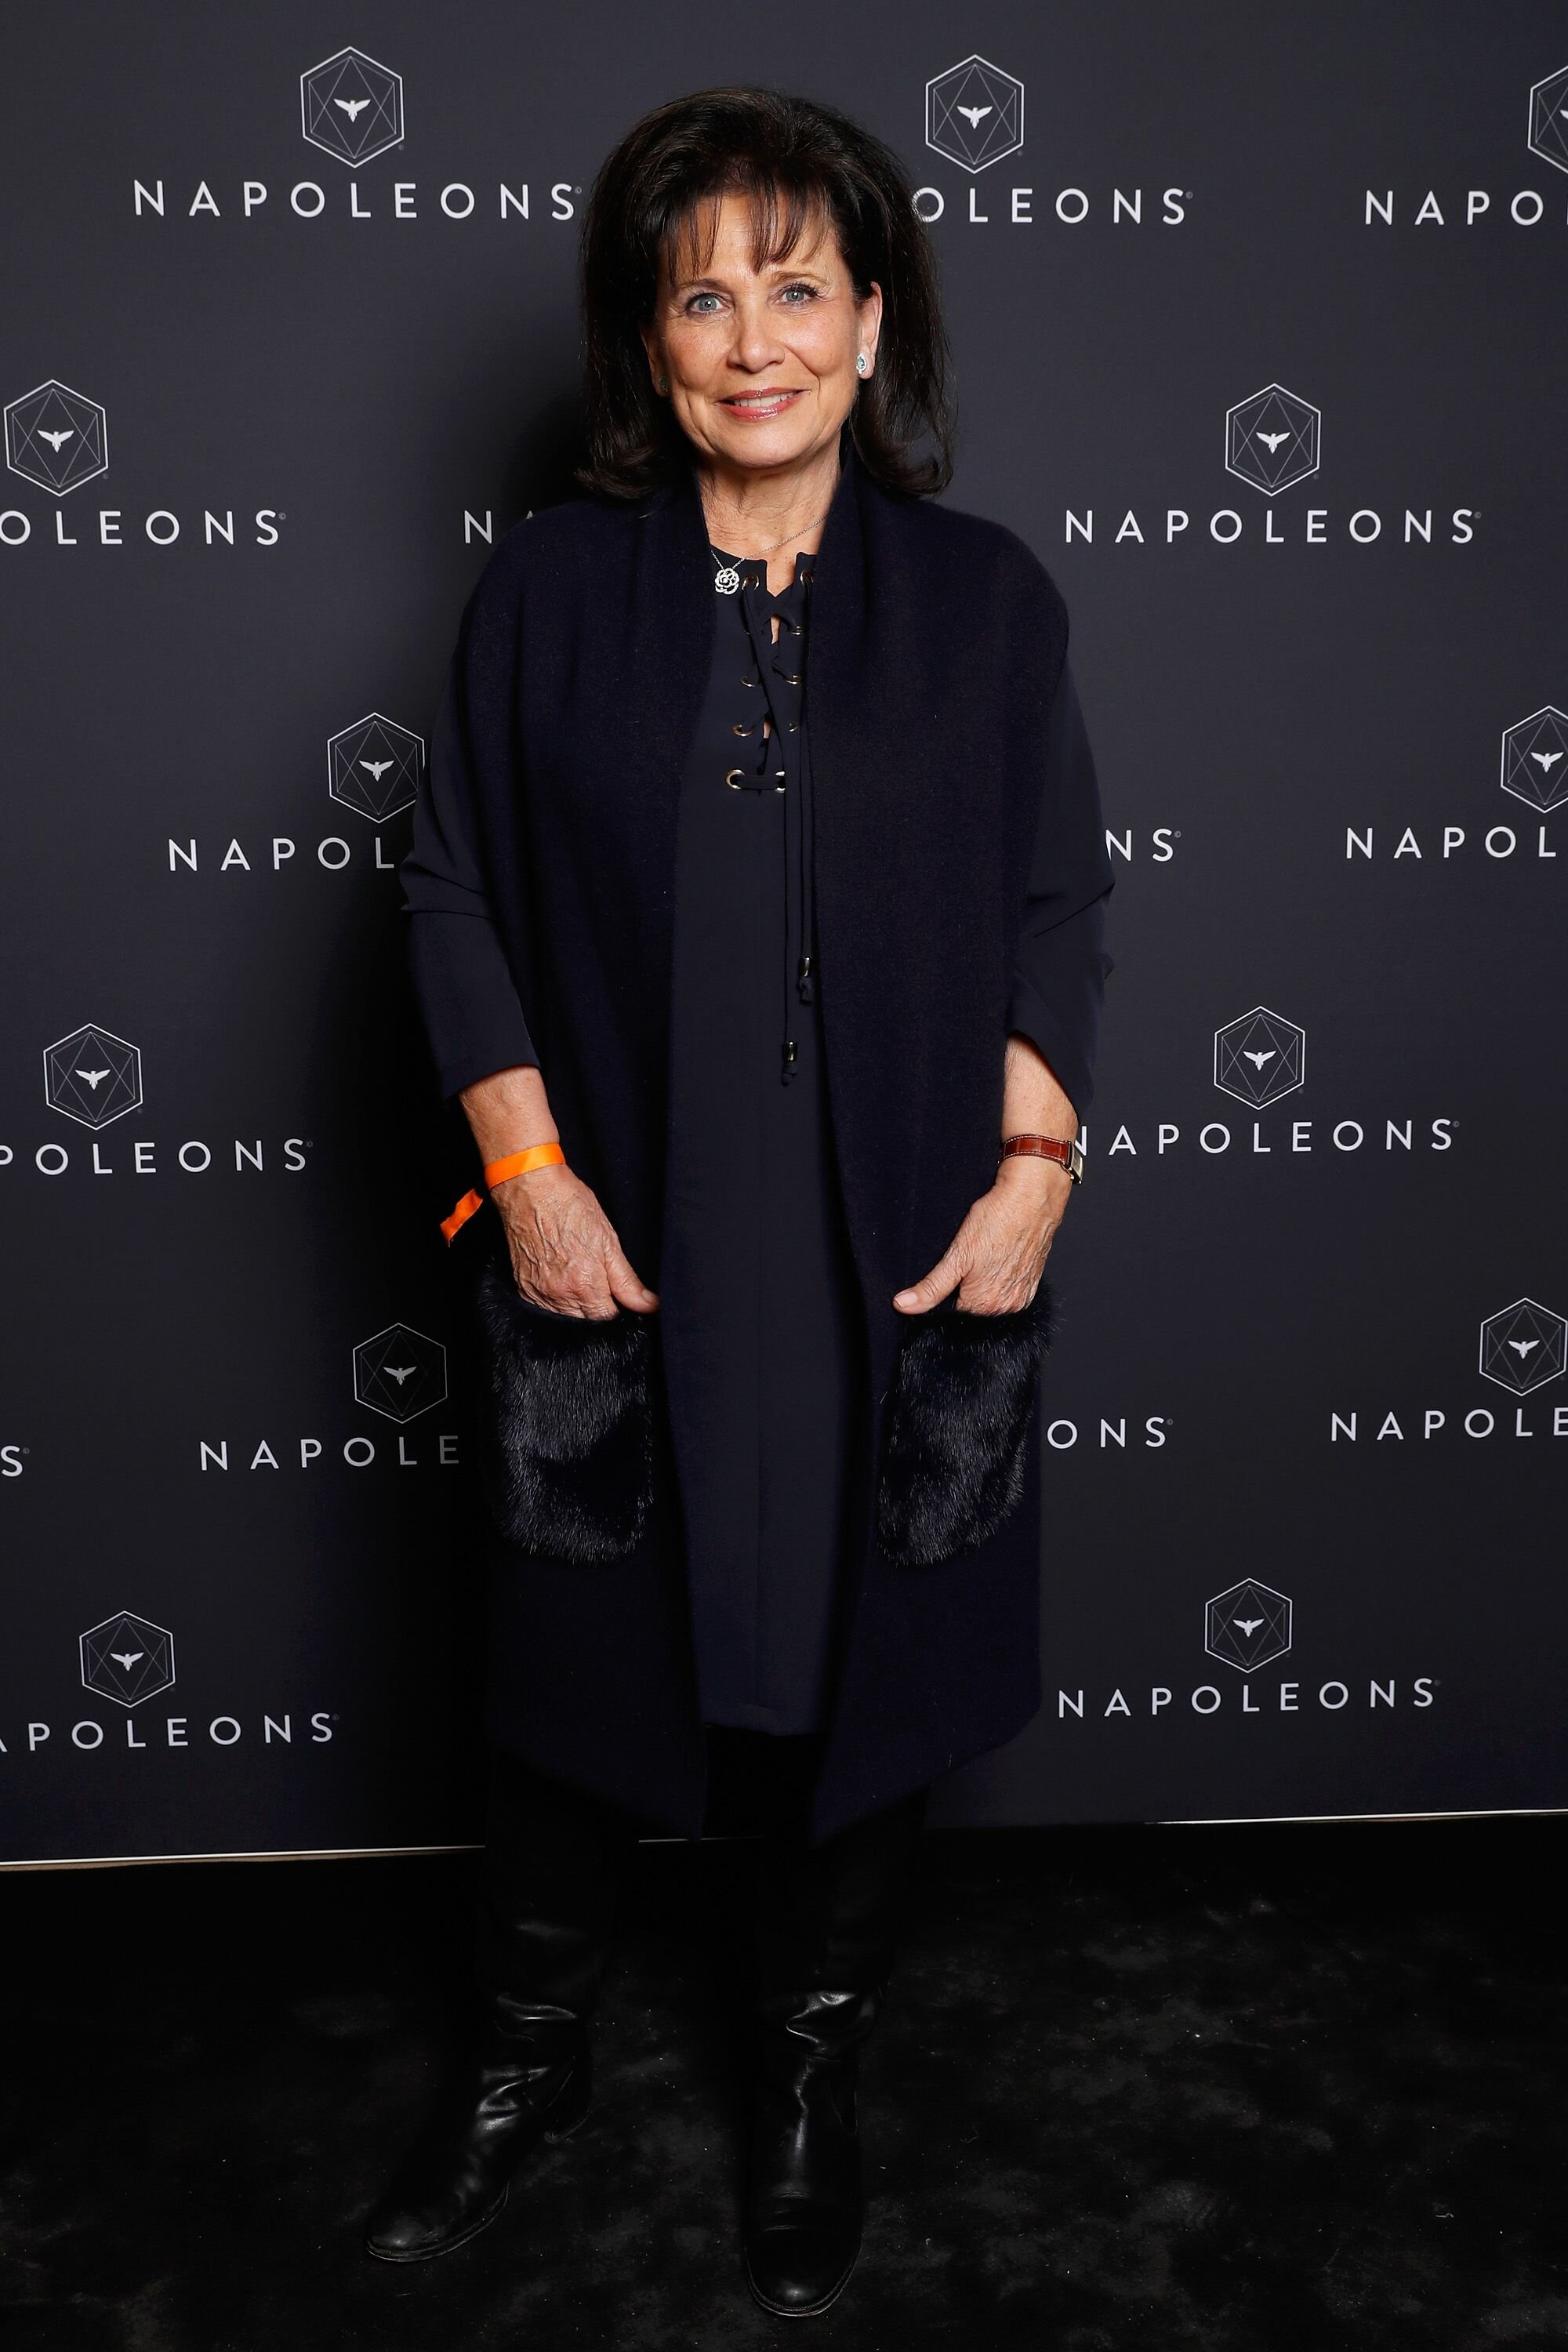 Anne Sinclair assiste à la séance d'introduction au 7e sommet des Napoléons à la Maison de la Radio le 2 décembre 2017 à Paris, France. | Photo : Getty Images